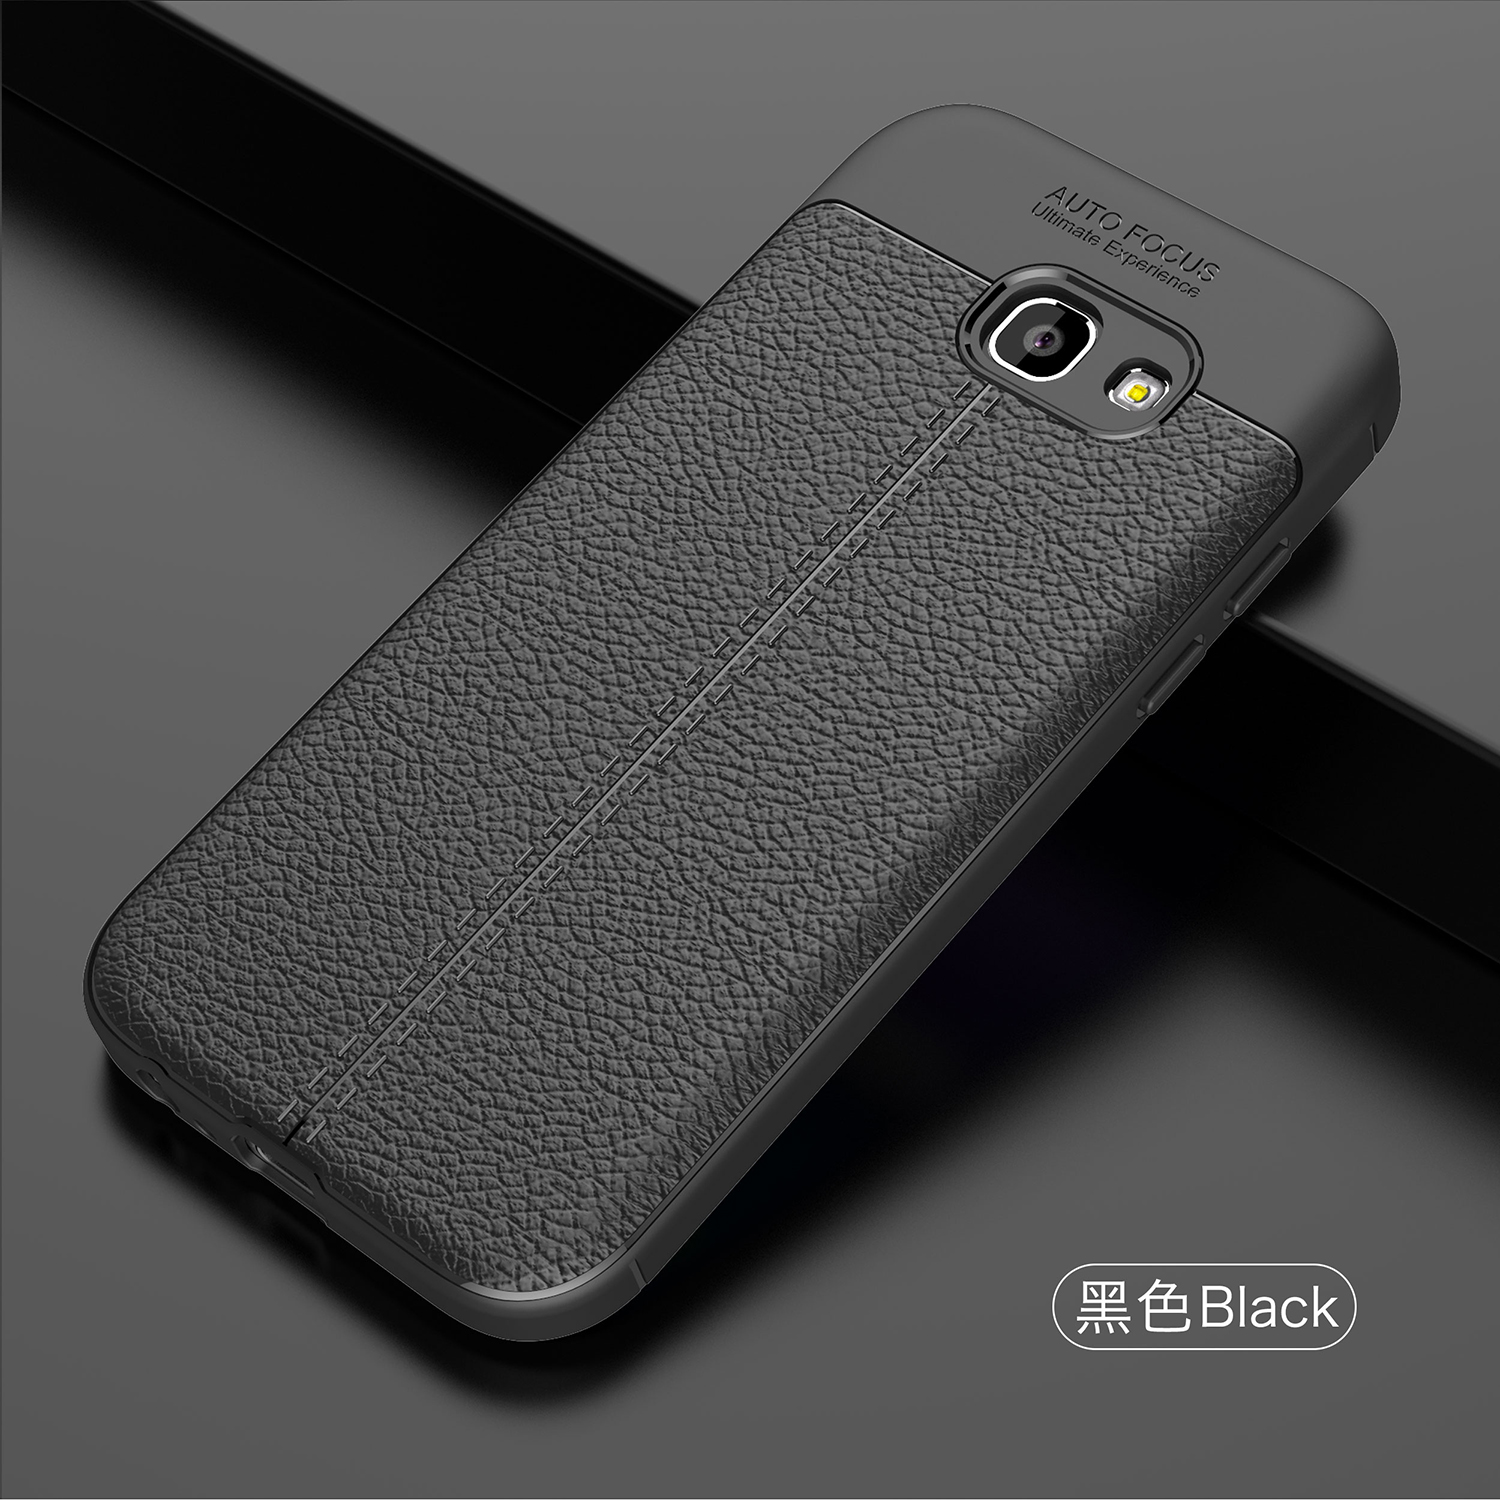 For Cover Samsung Galaxy A5 2017 Case Rubber Silicone Phone Case Cover for Samsung A5 2017 Case for Samsung Galaxy A5 2017 A520 image